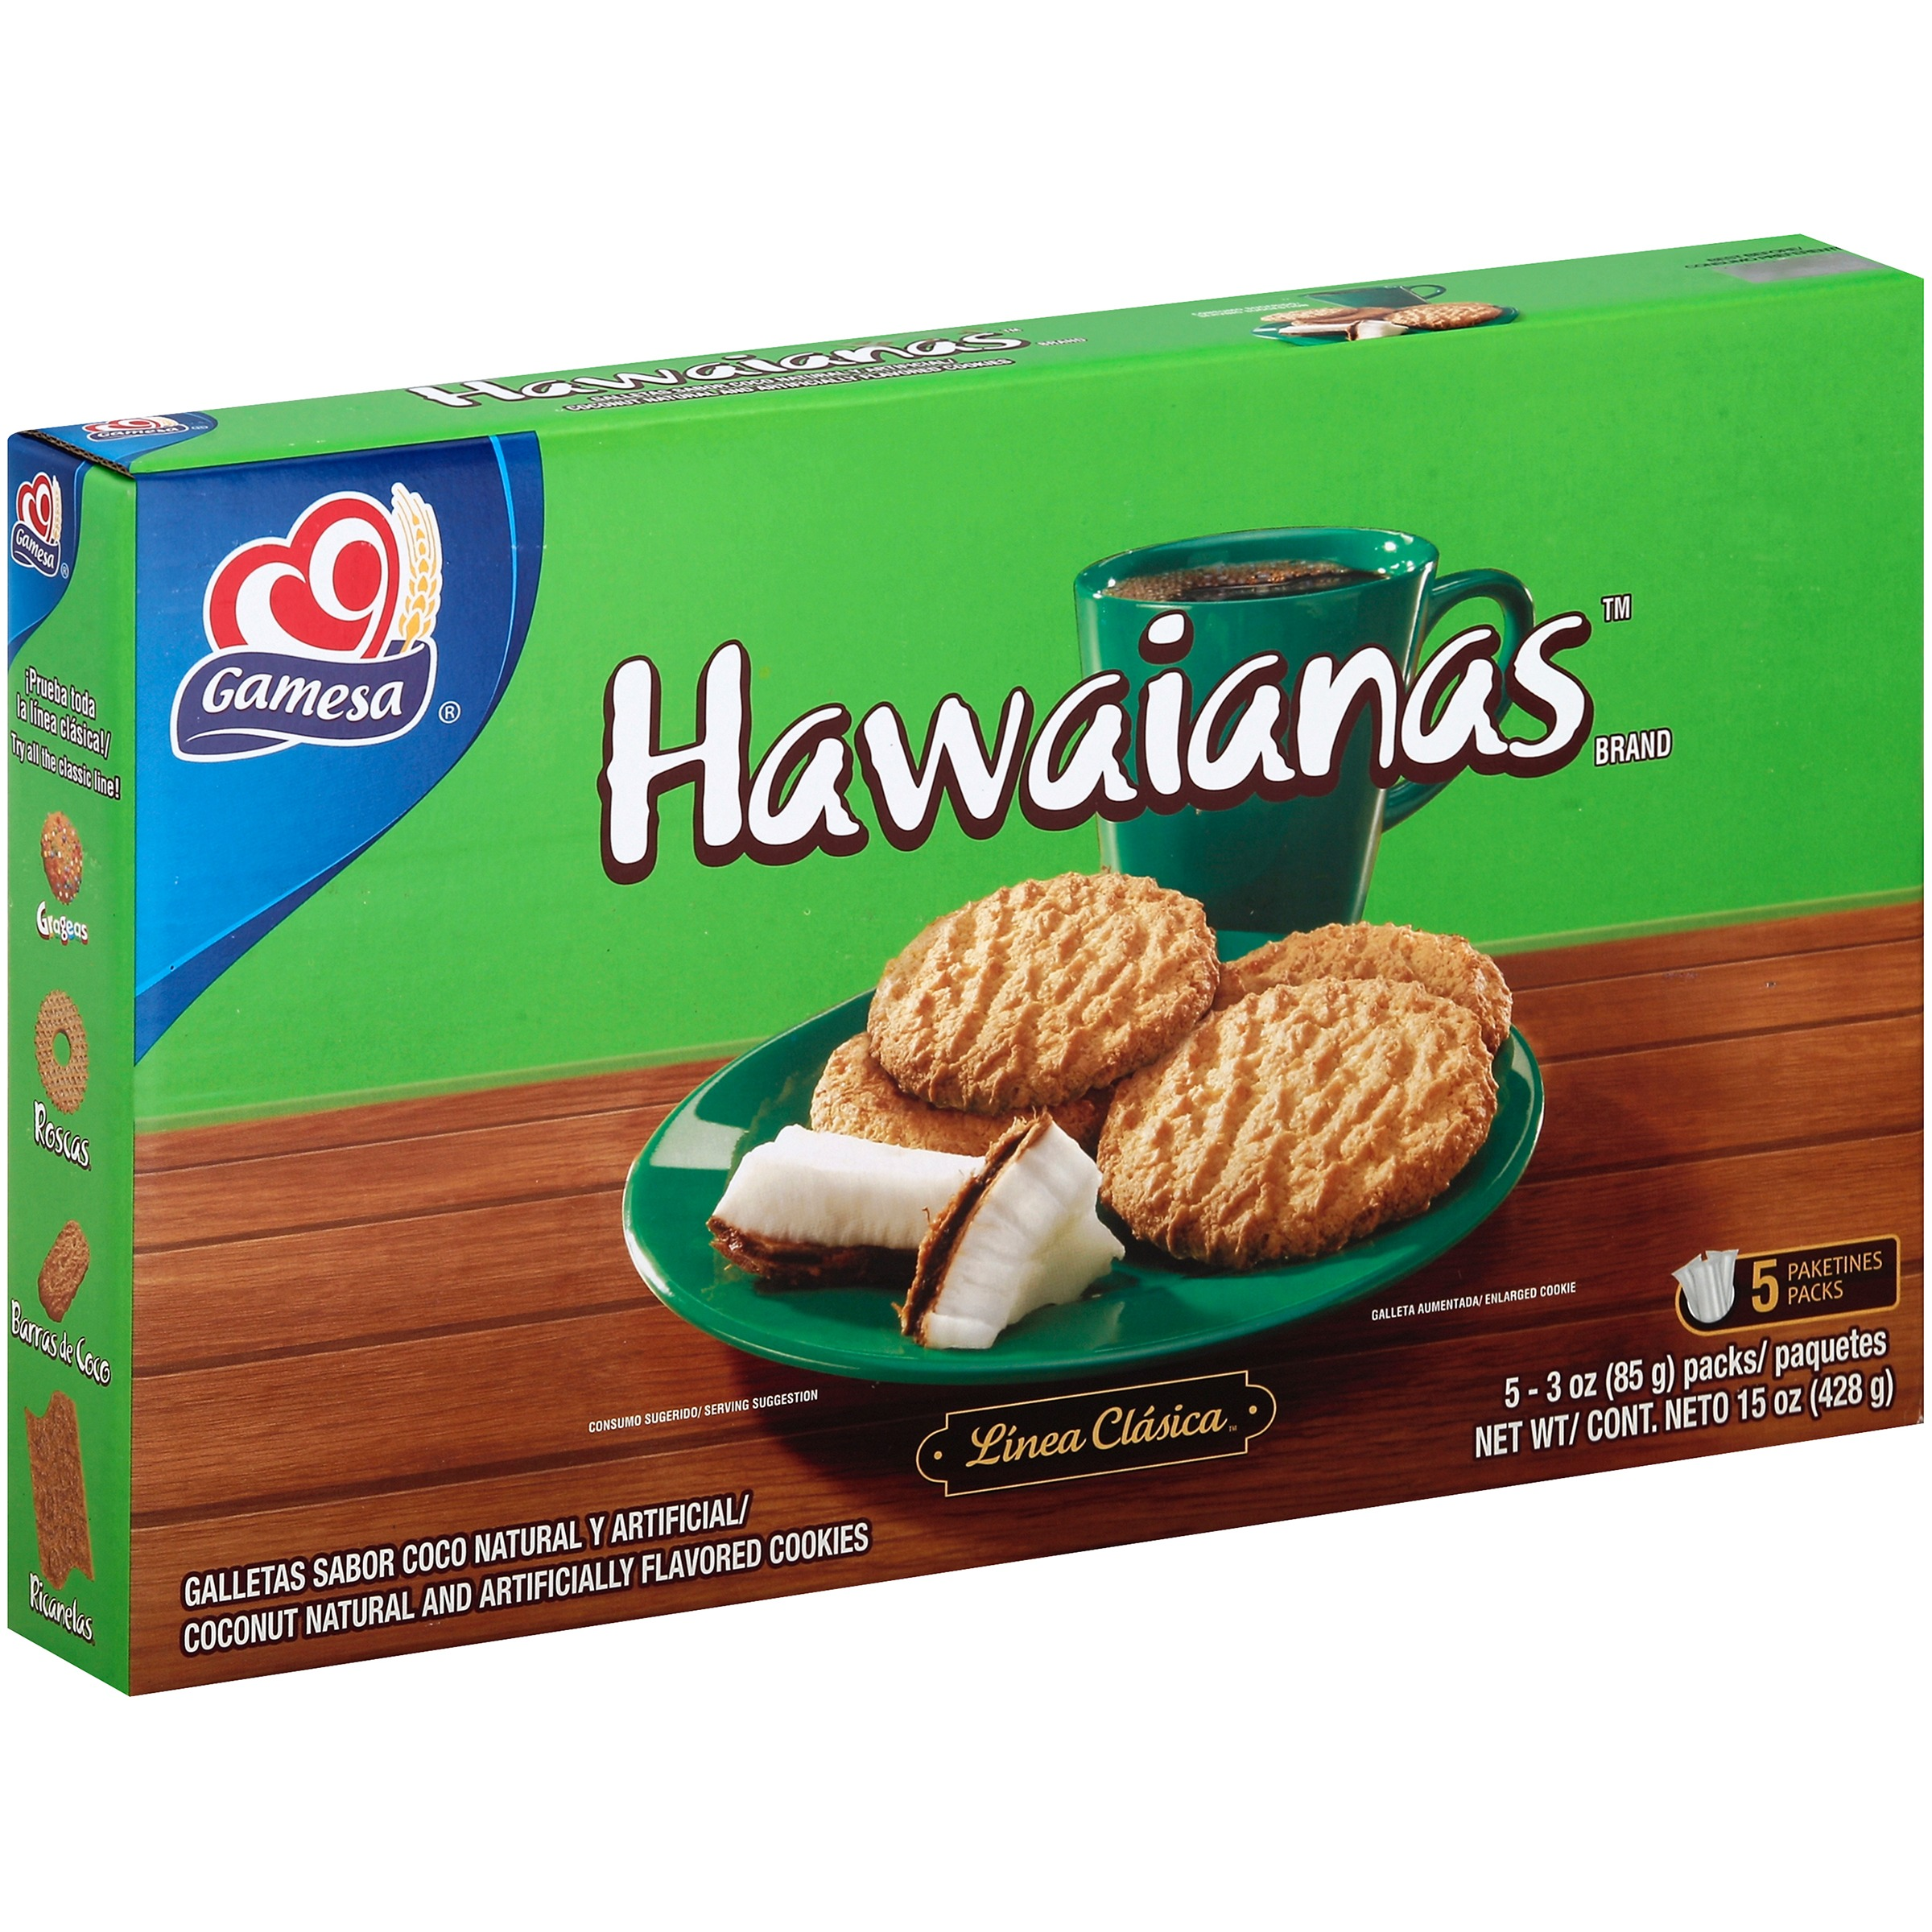 Gamesa Hawaiians Coconut Cookies, 3 Oz., 5 Count